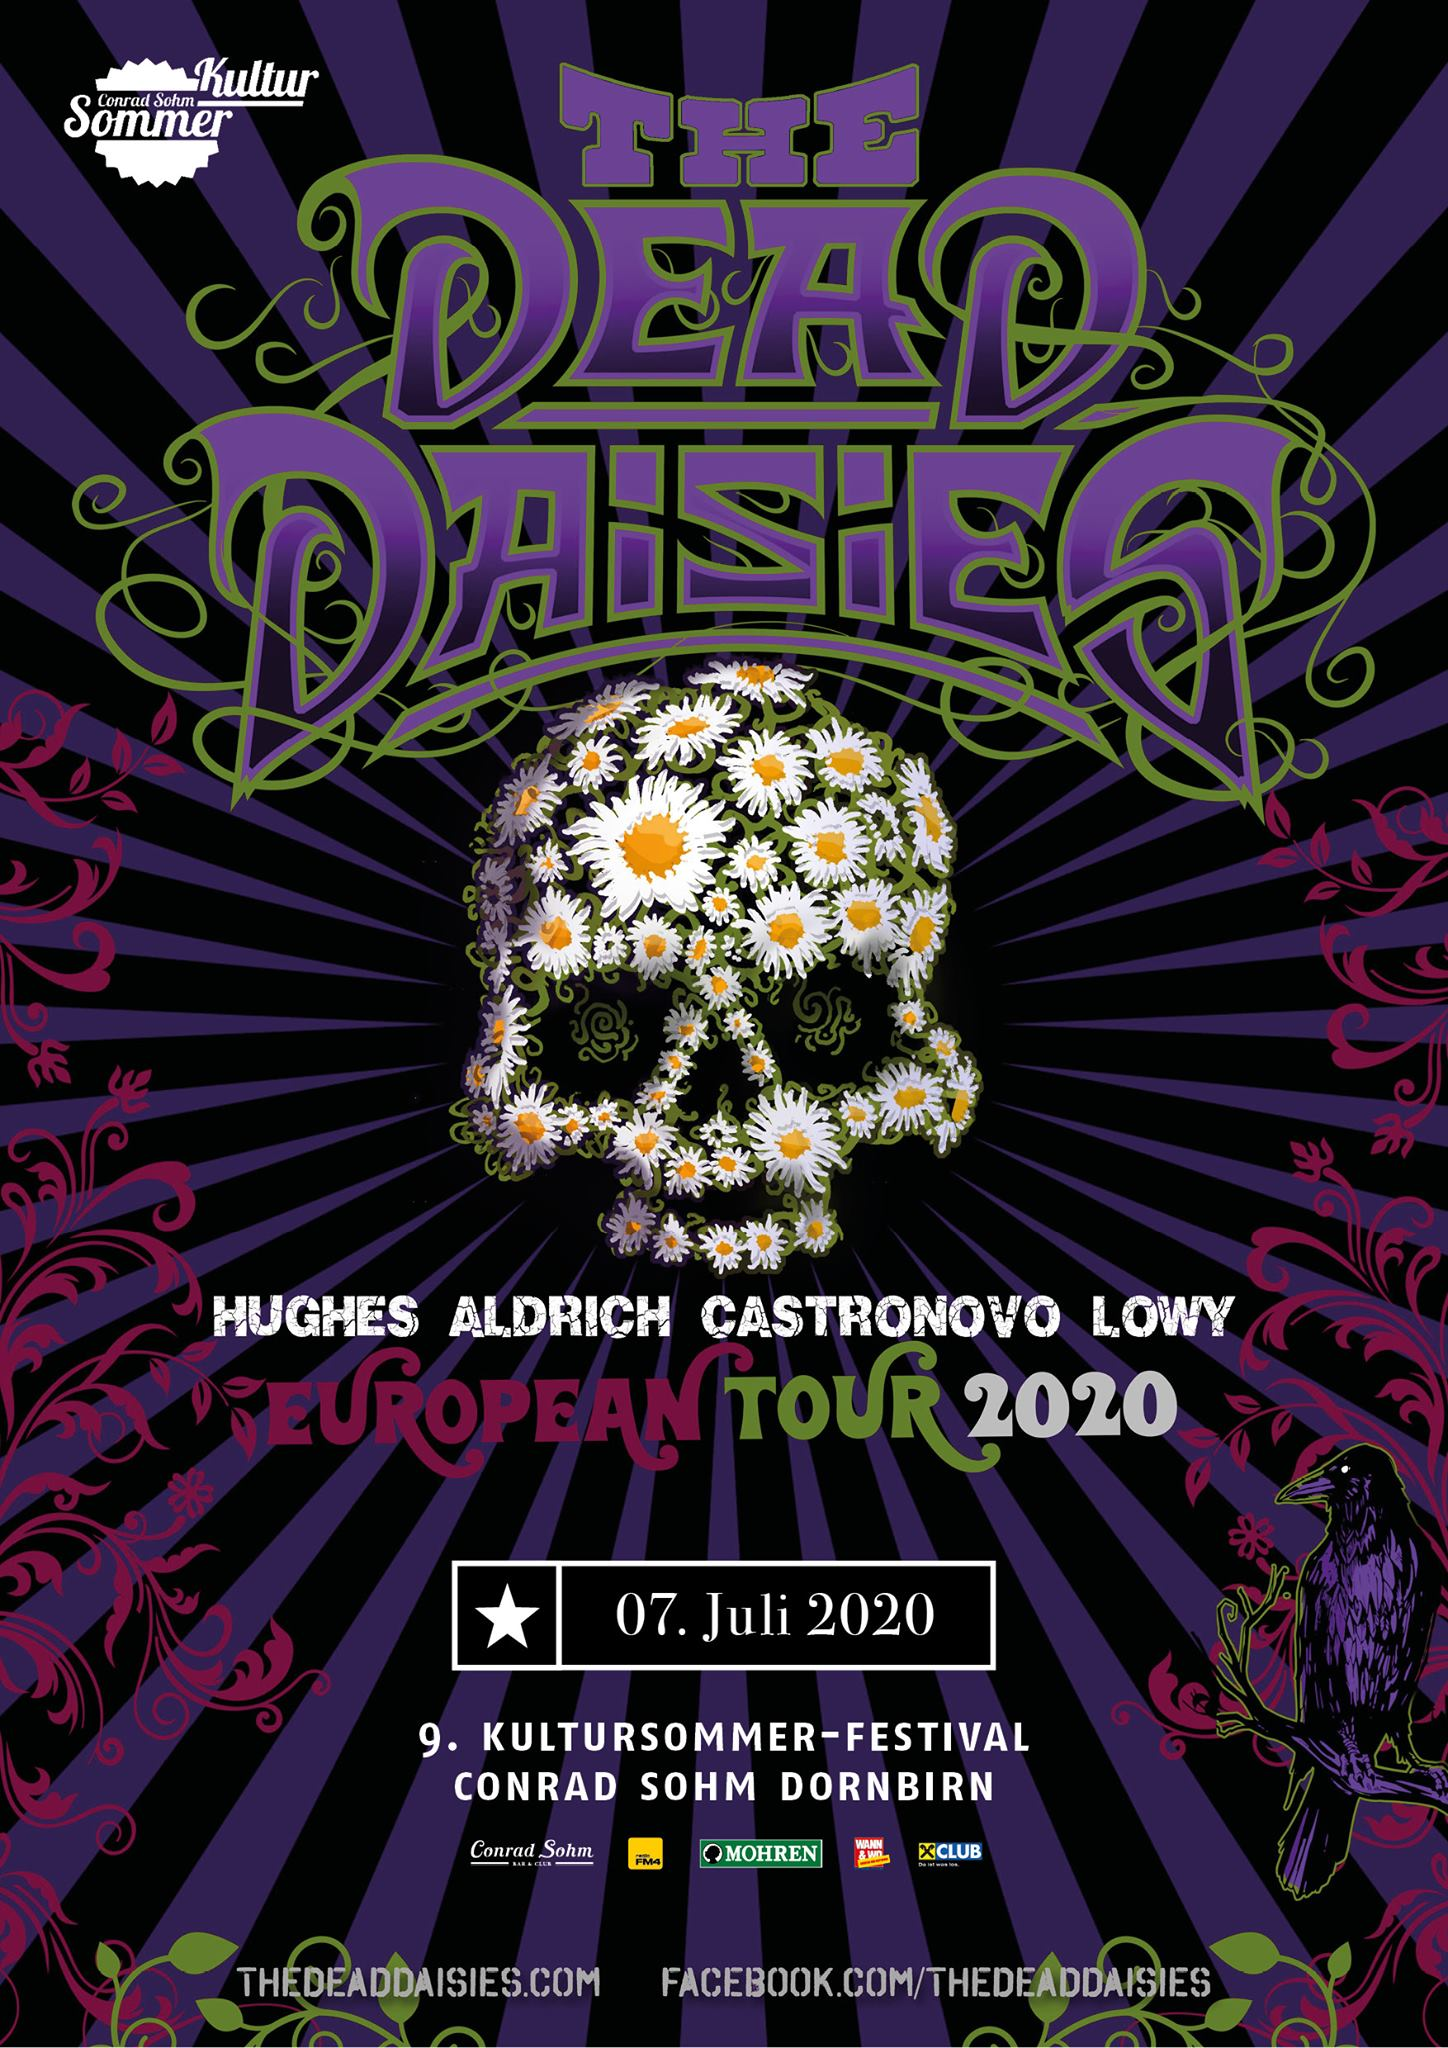 The Dead Daisies am 7. July 2020 @ Conrad Sohm.